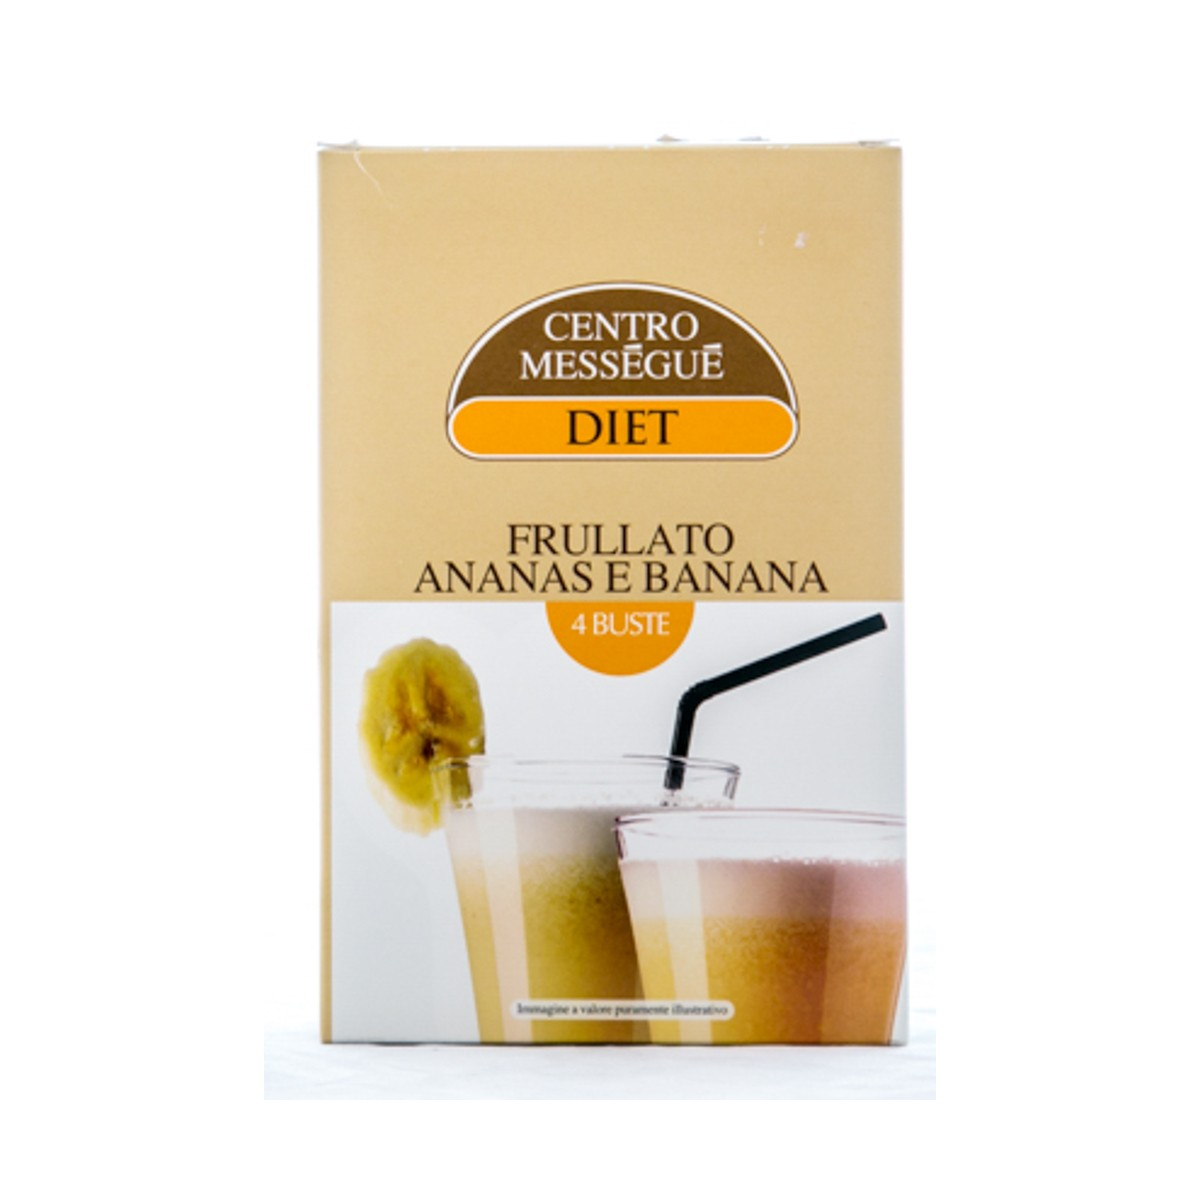 BALDAN GROUP CENTRO MESSEGUE DIET FRULLATO ANANAS E BANANA 100g